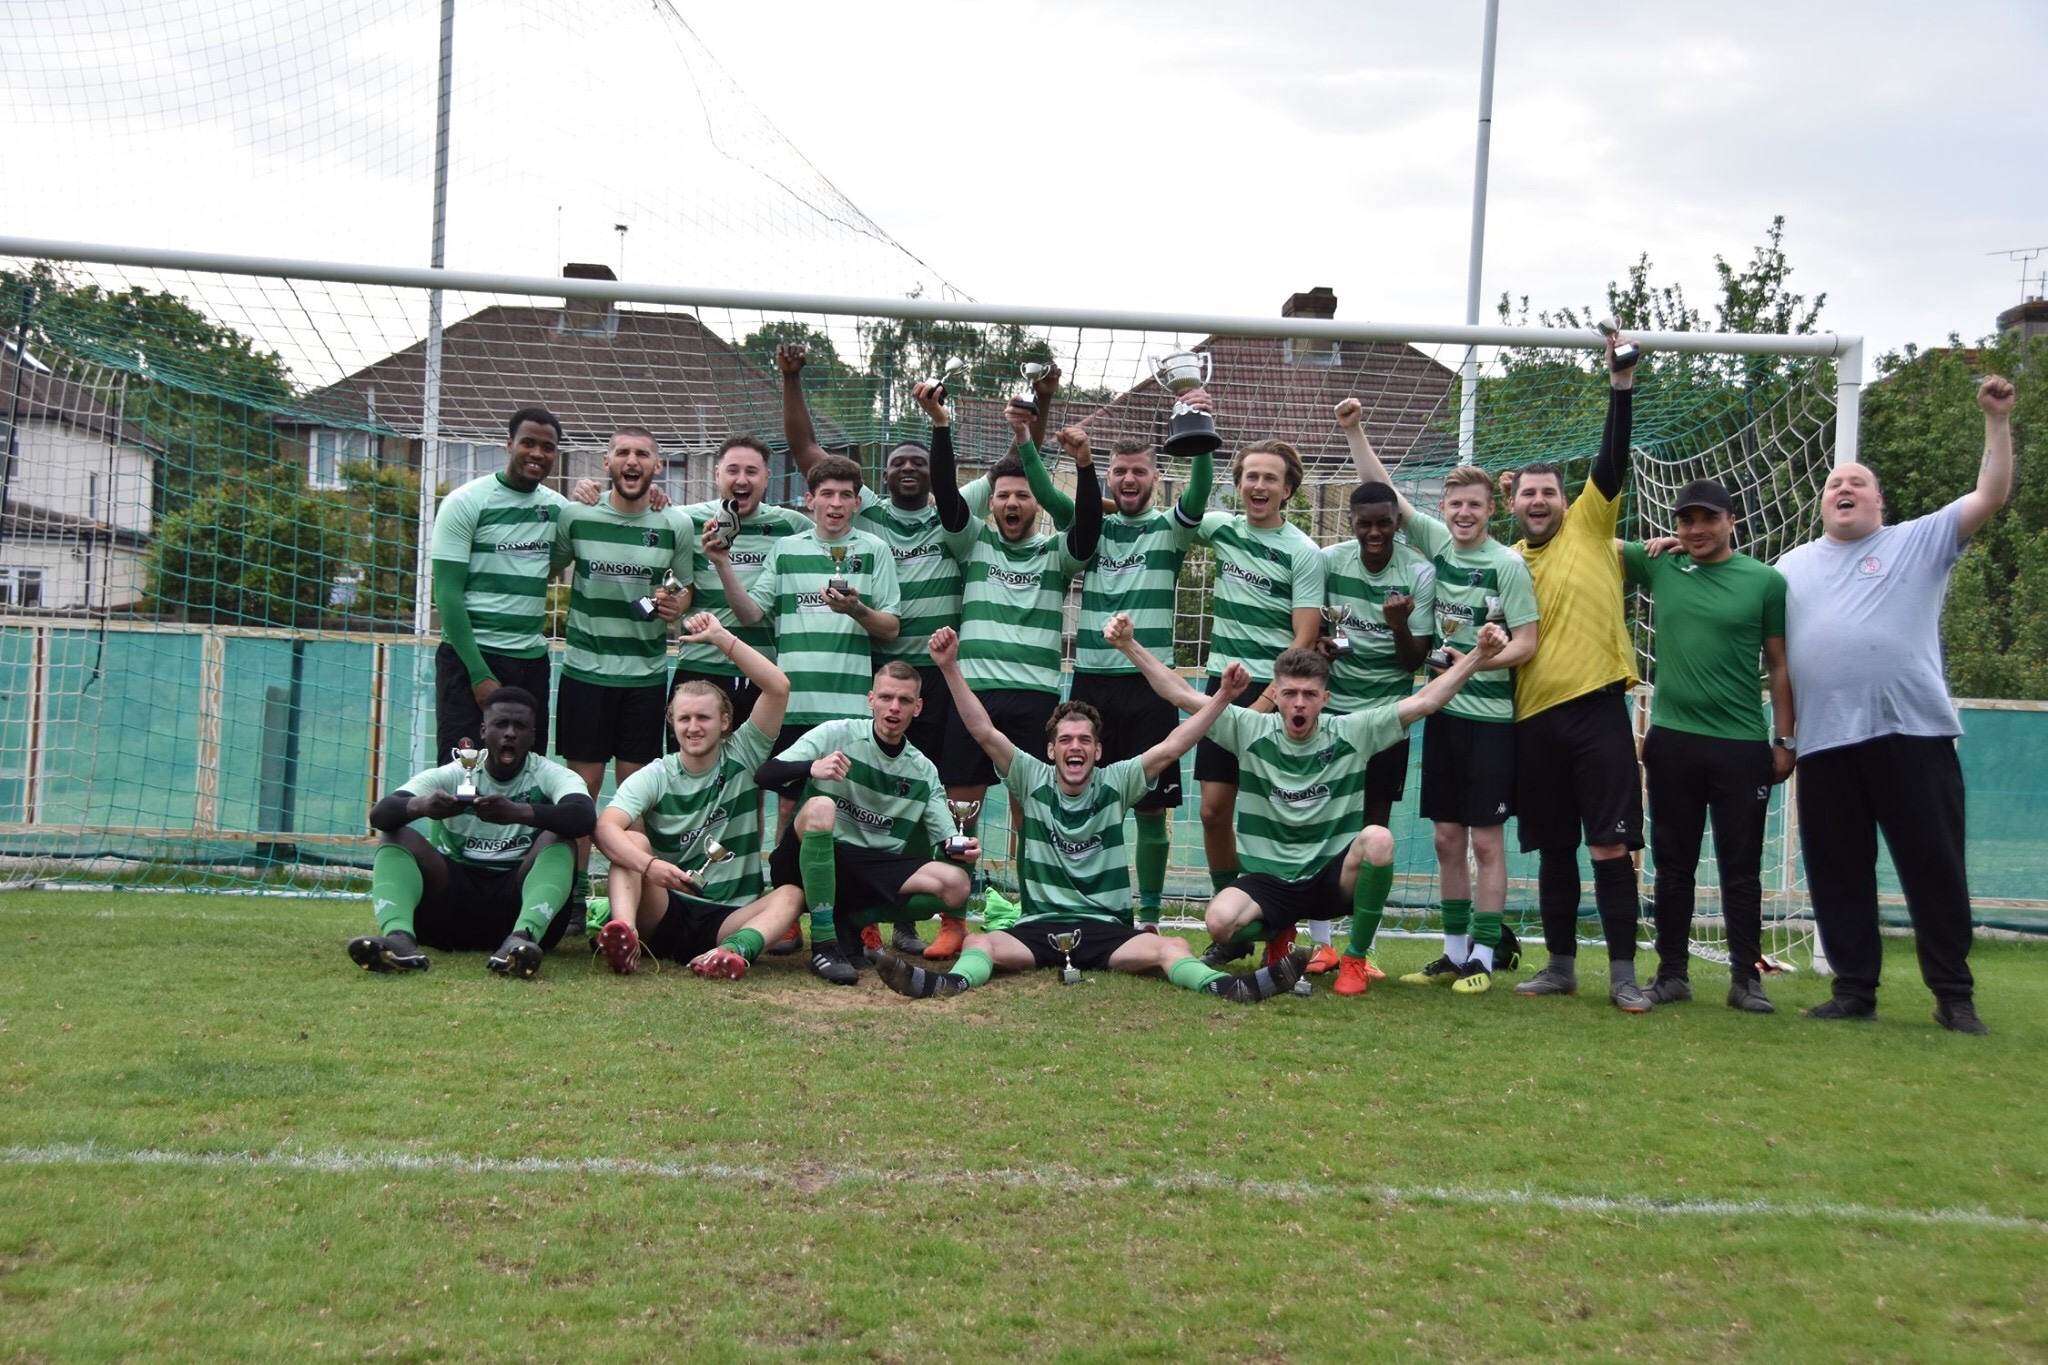 Welling Town A celebrate winning the 2018/19 Plumstead Challenge Cup at VCD Athletic FC